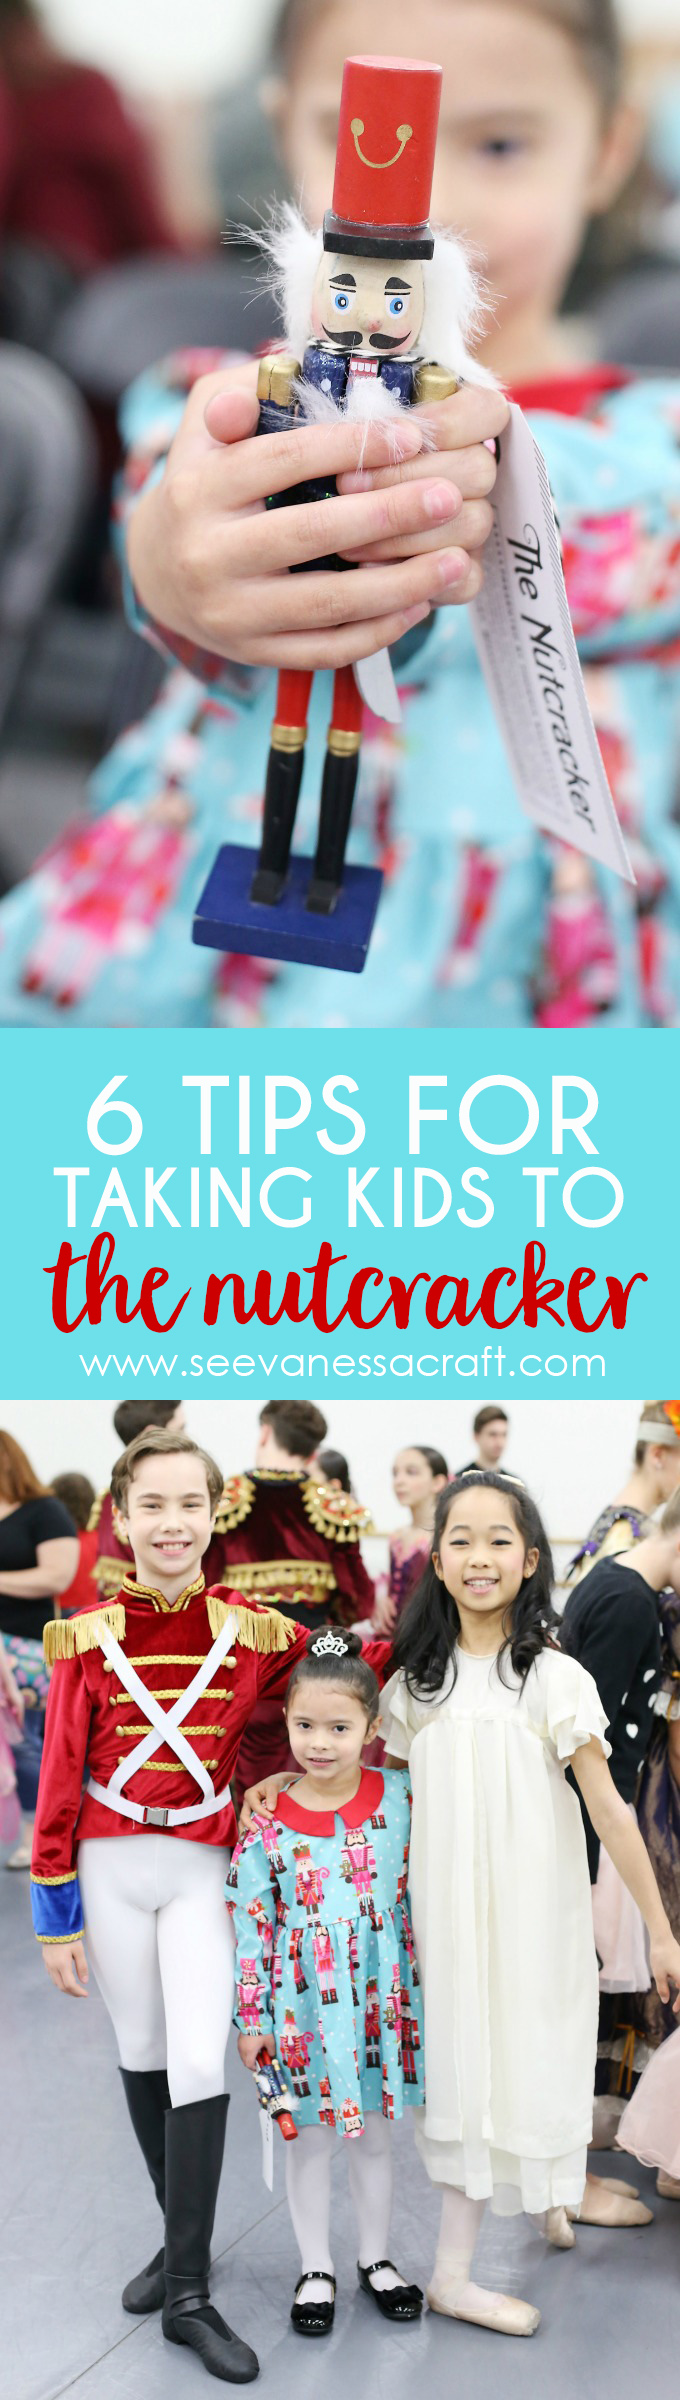 6 Tips for Taking Kids to The Nutcracker Ballet copy